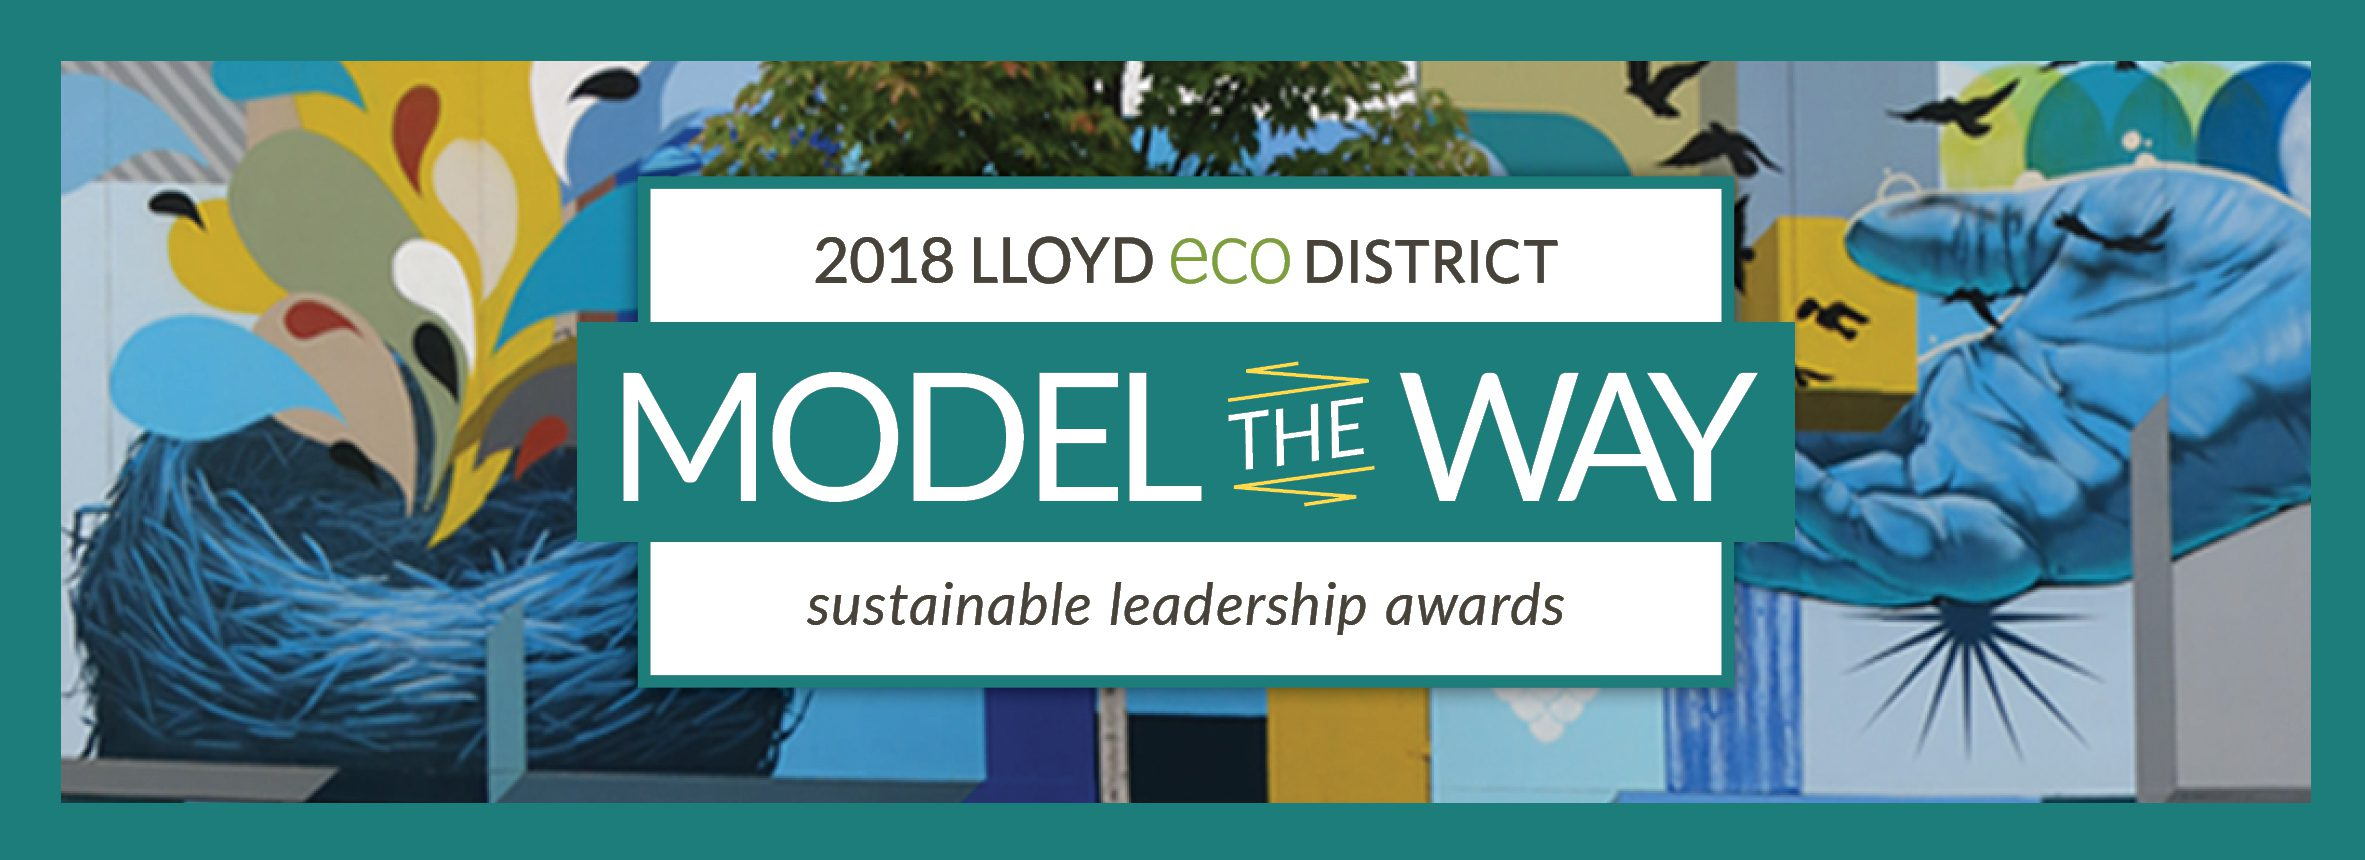 2018 Model the Way Sustainable Leadership Awards